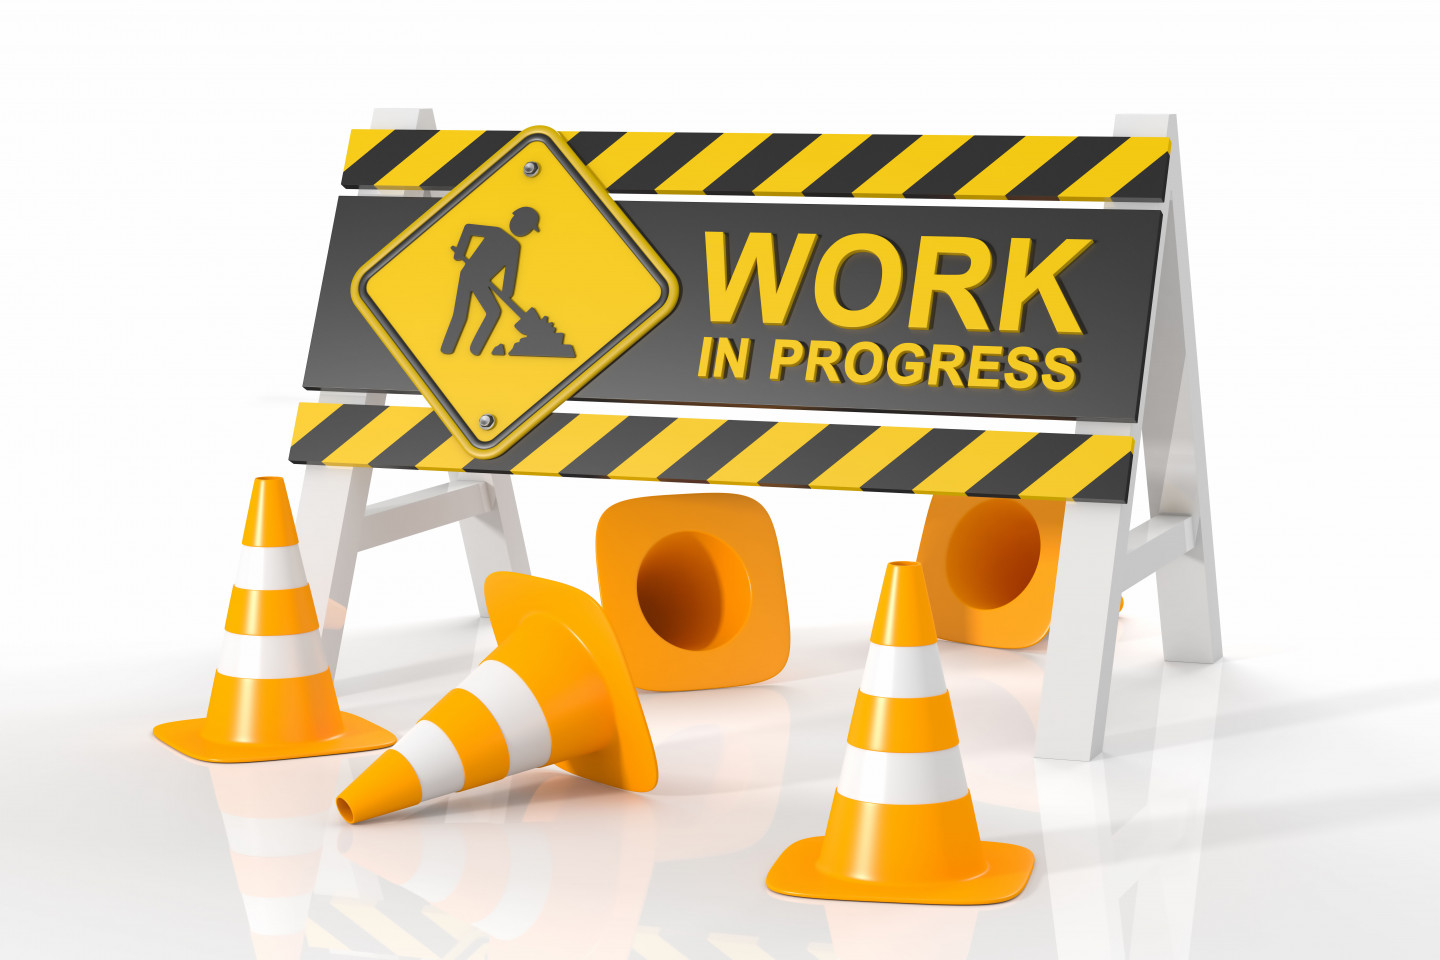 Photo of a construction sign with Work in Progress and construction cones.